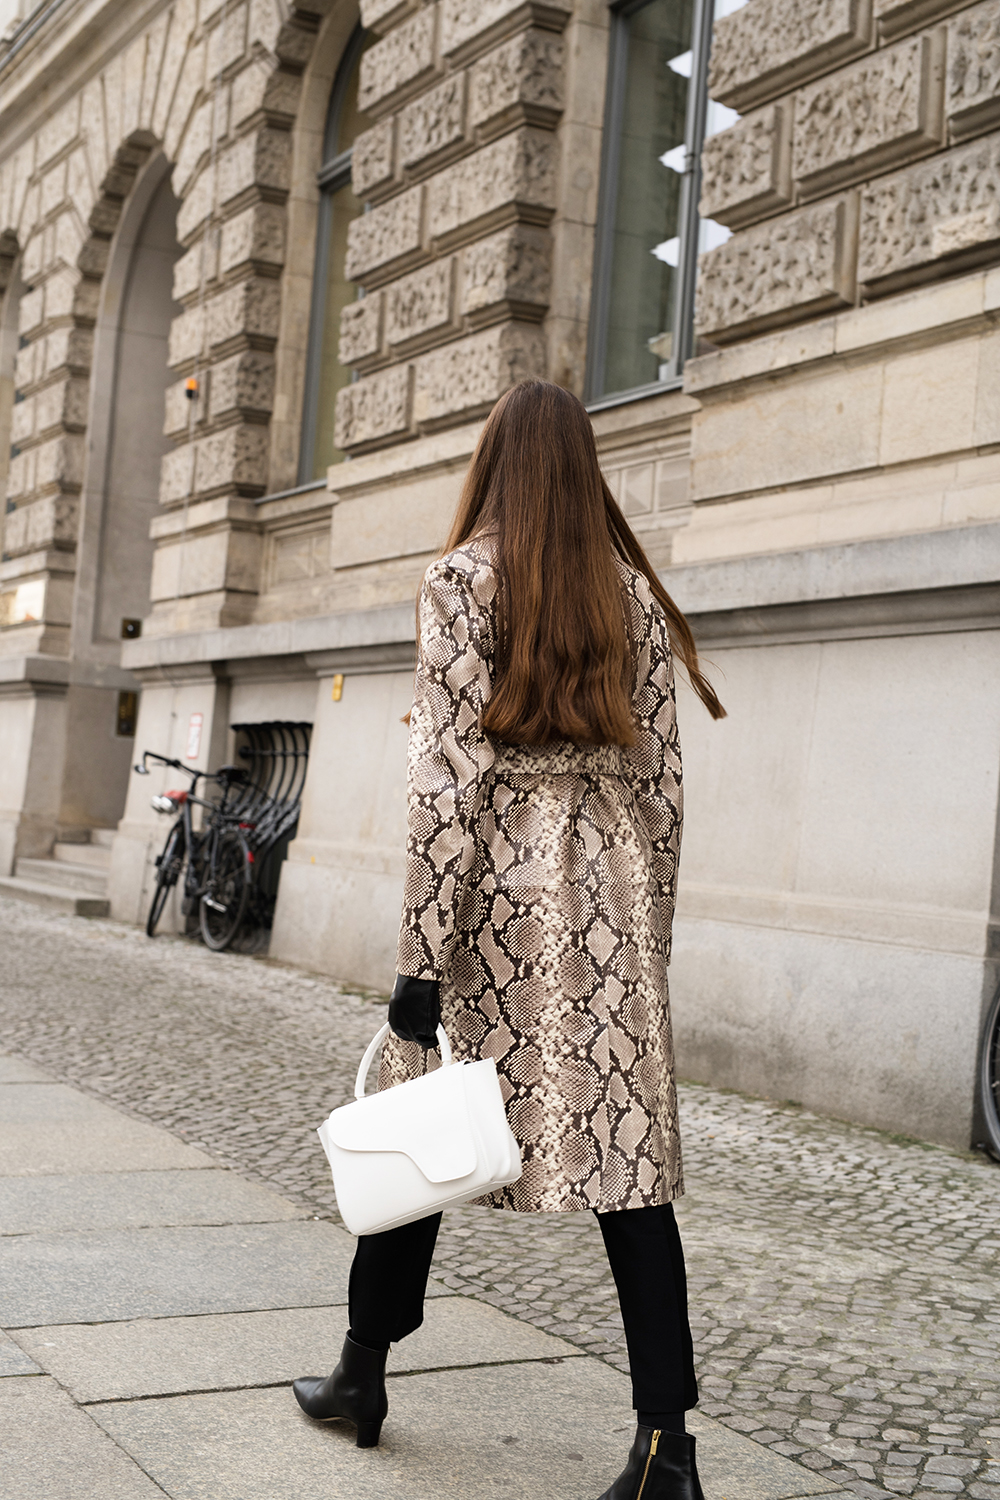 HOW TO WEAR SNAKESKIN PRINT